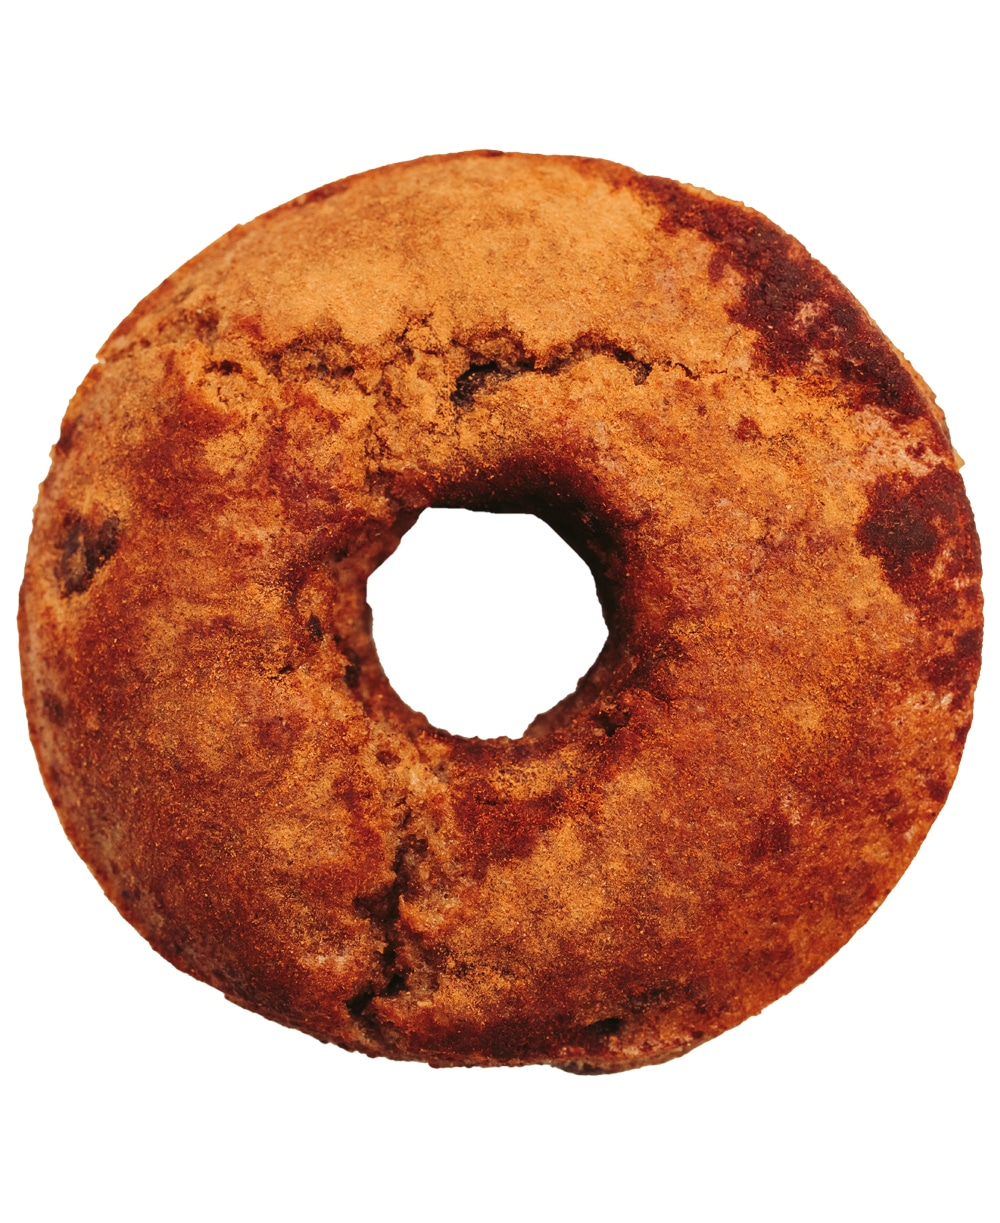 Nina's Cinnamon Raisin Paleo Bagel